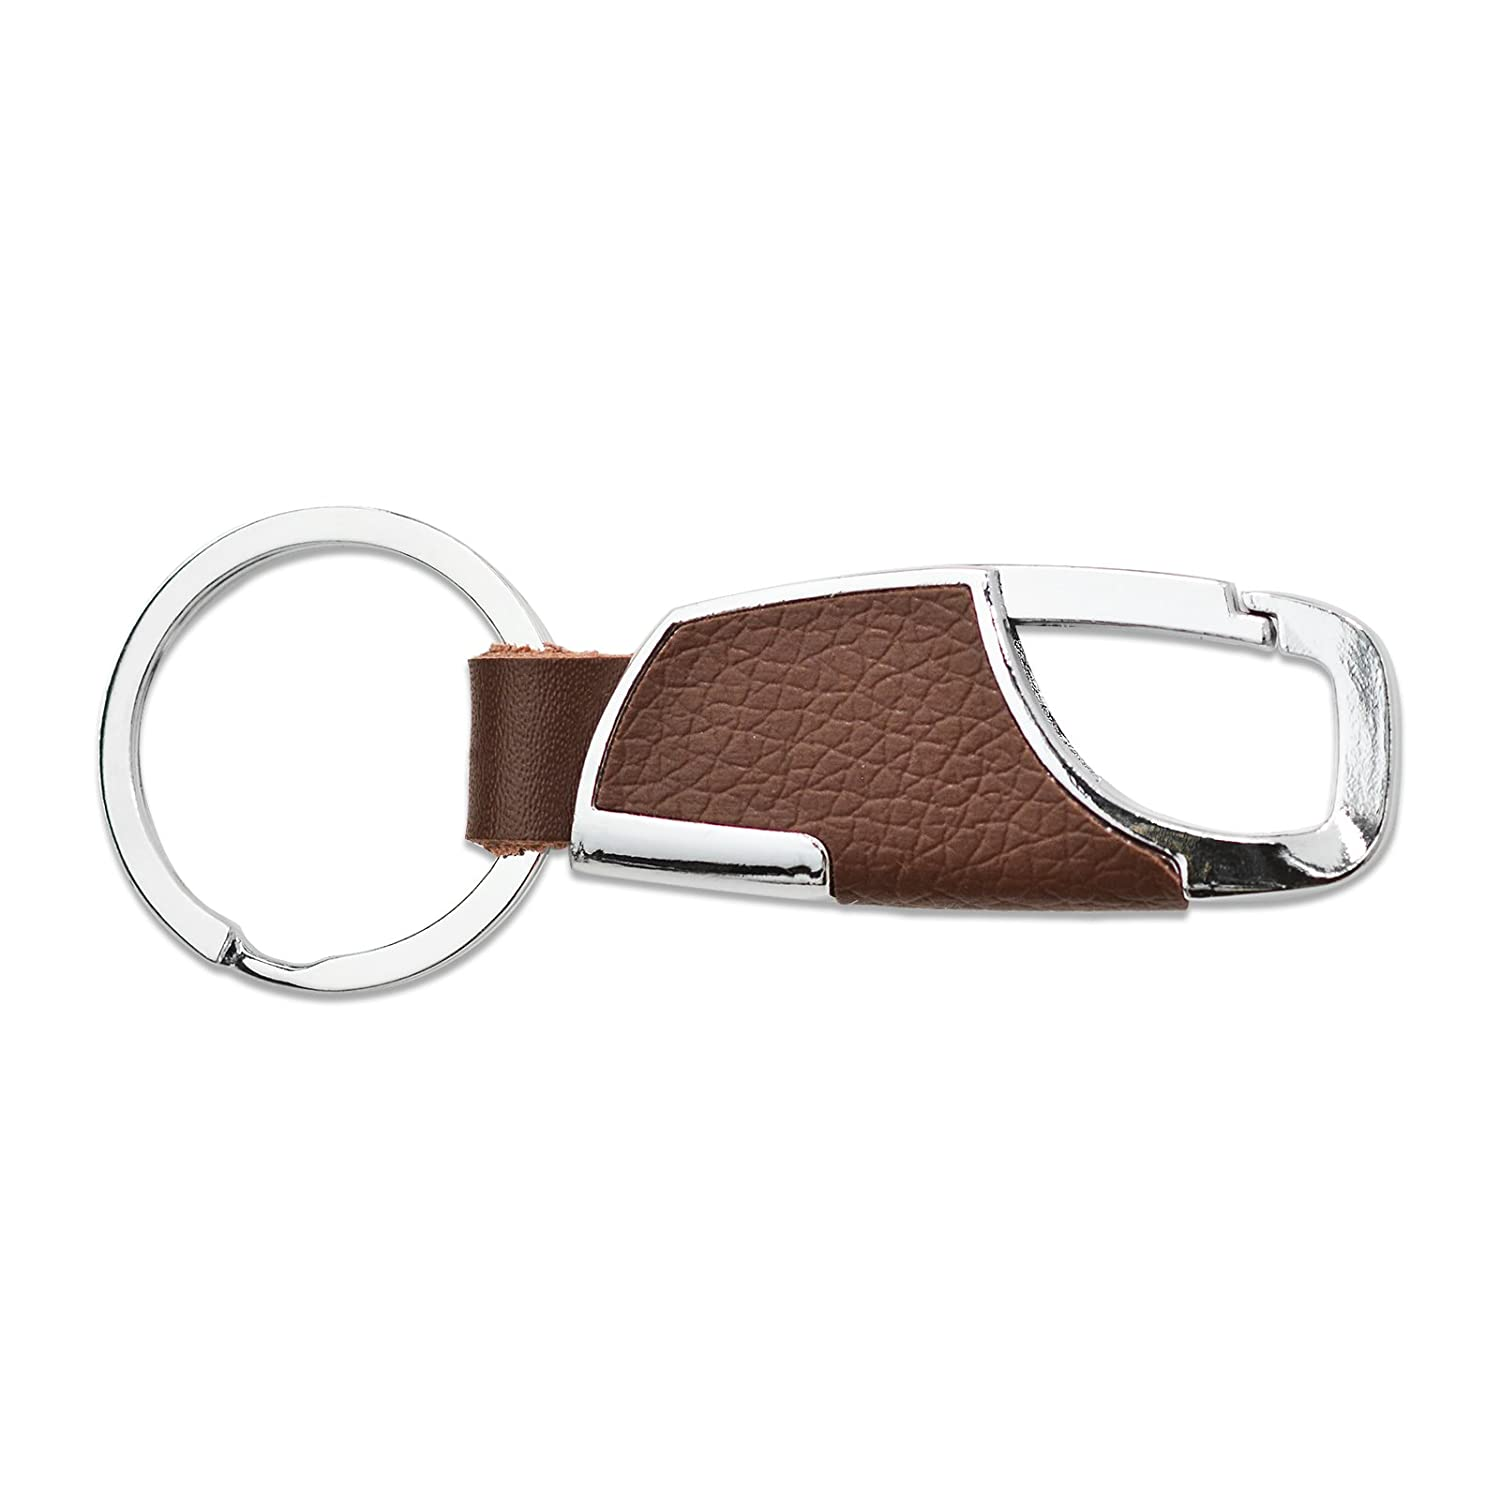 Apexia Tan Leather Stainless Steel Key Chain with Oval Silver Key Ring Clip 3.5 x 1